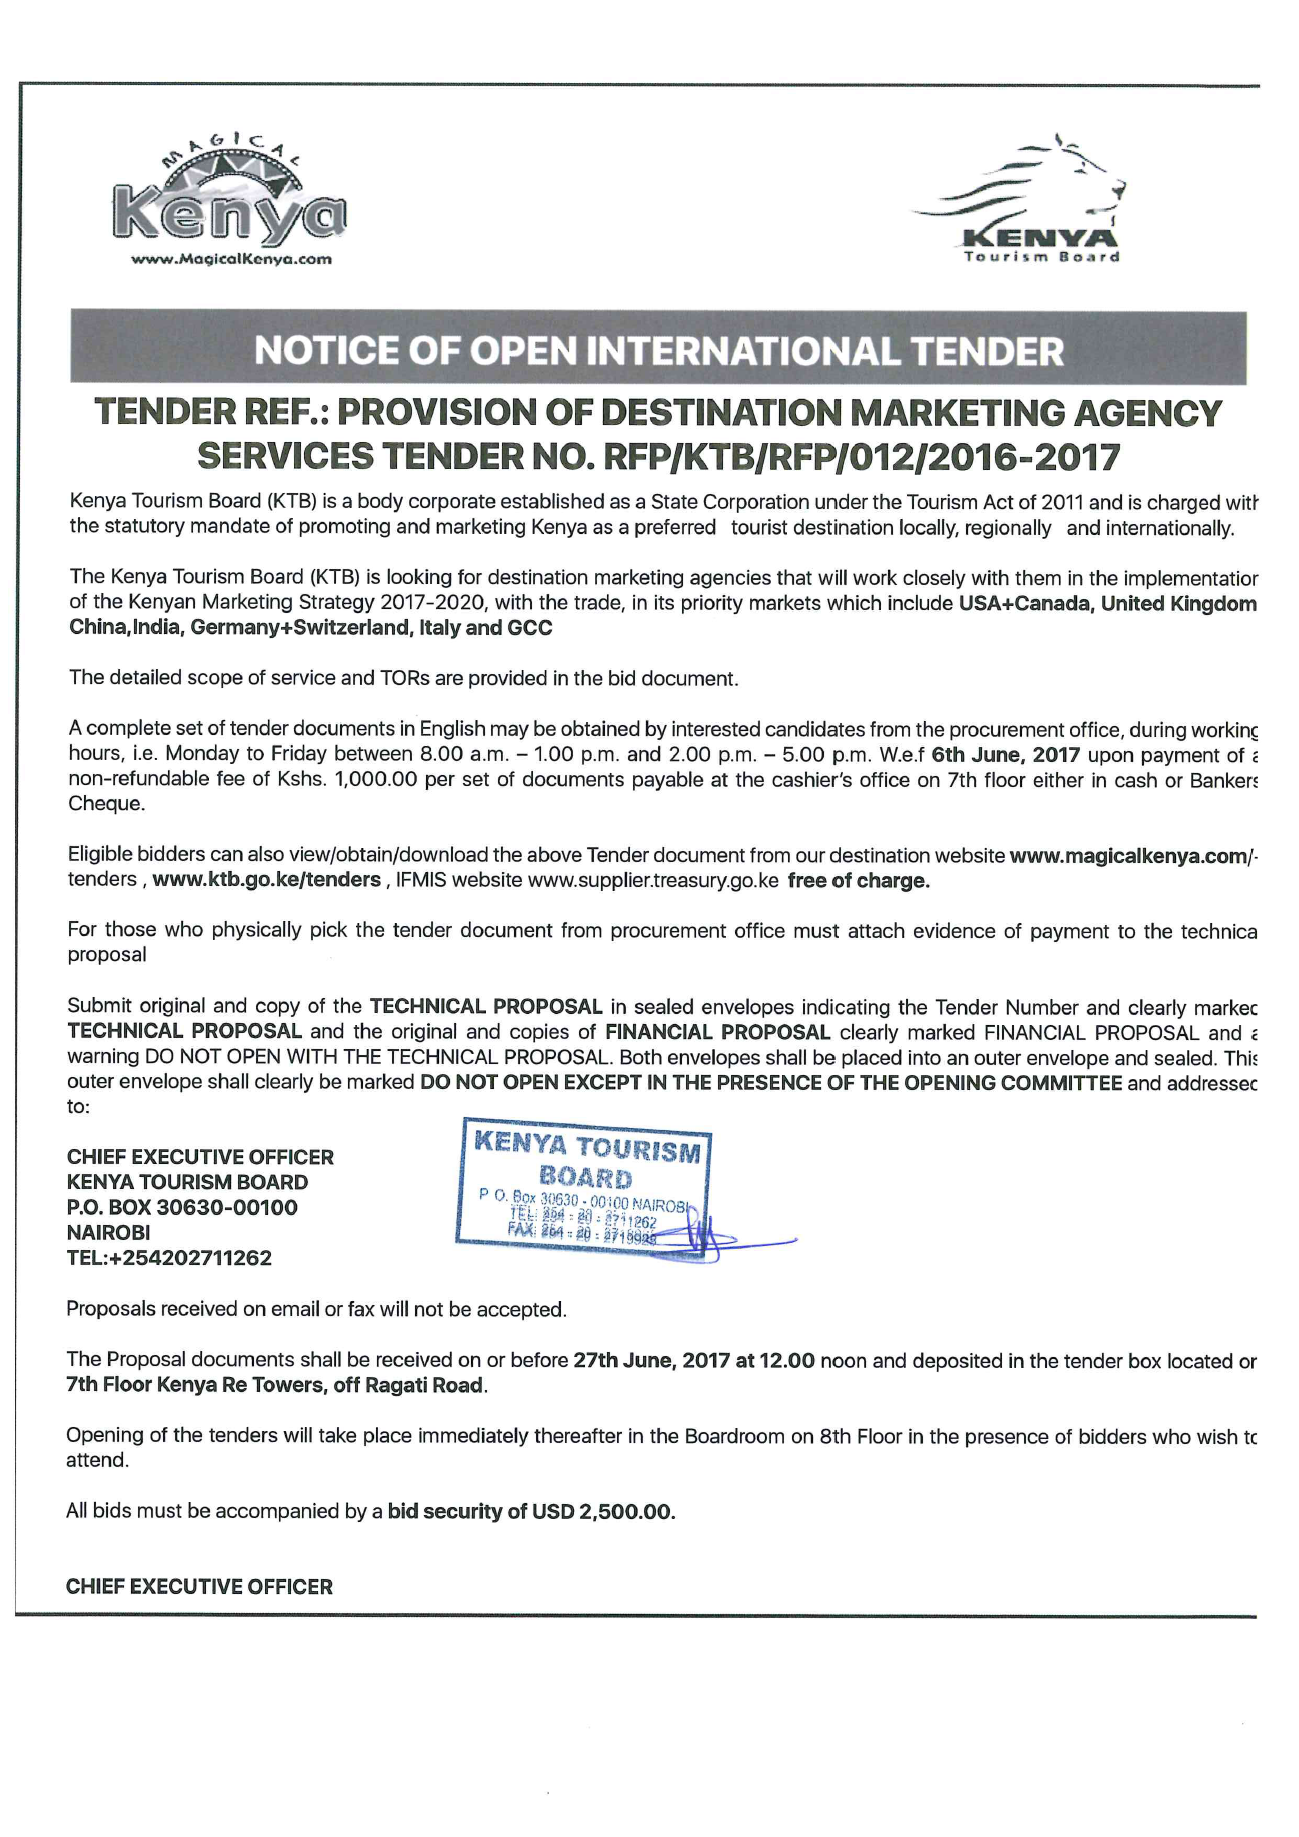 Kenya's Tourism Board issues PR tender document for global bids